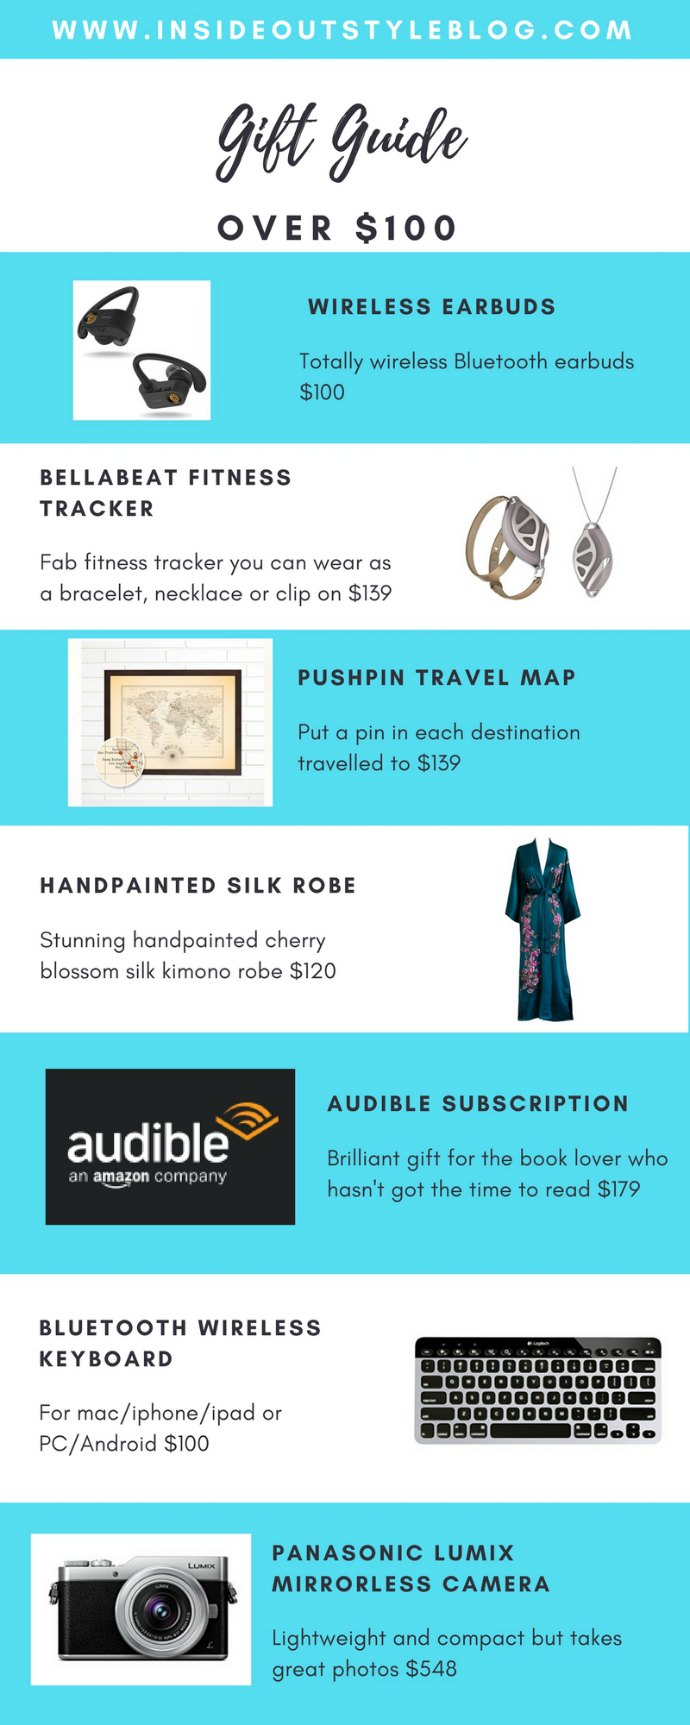 Fabulous Gift Guide for those more indulgent gifts over $100